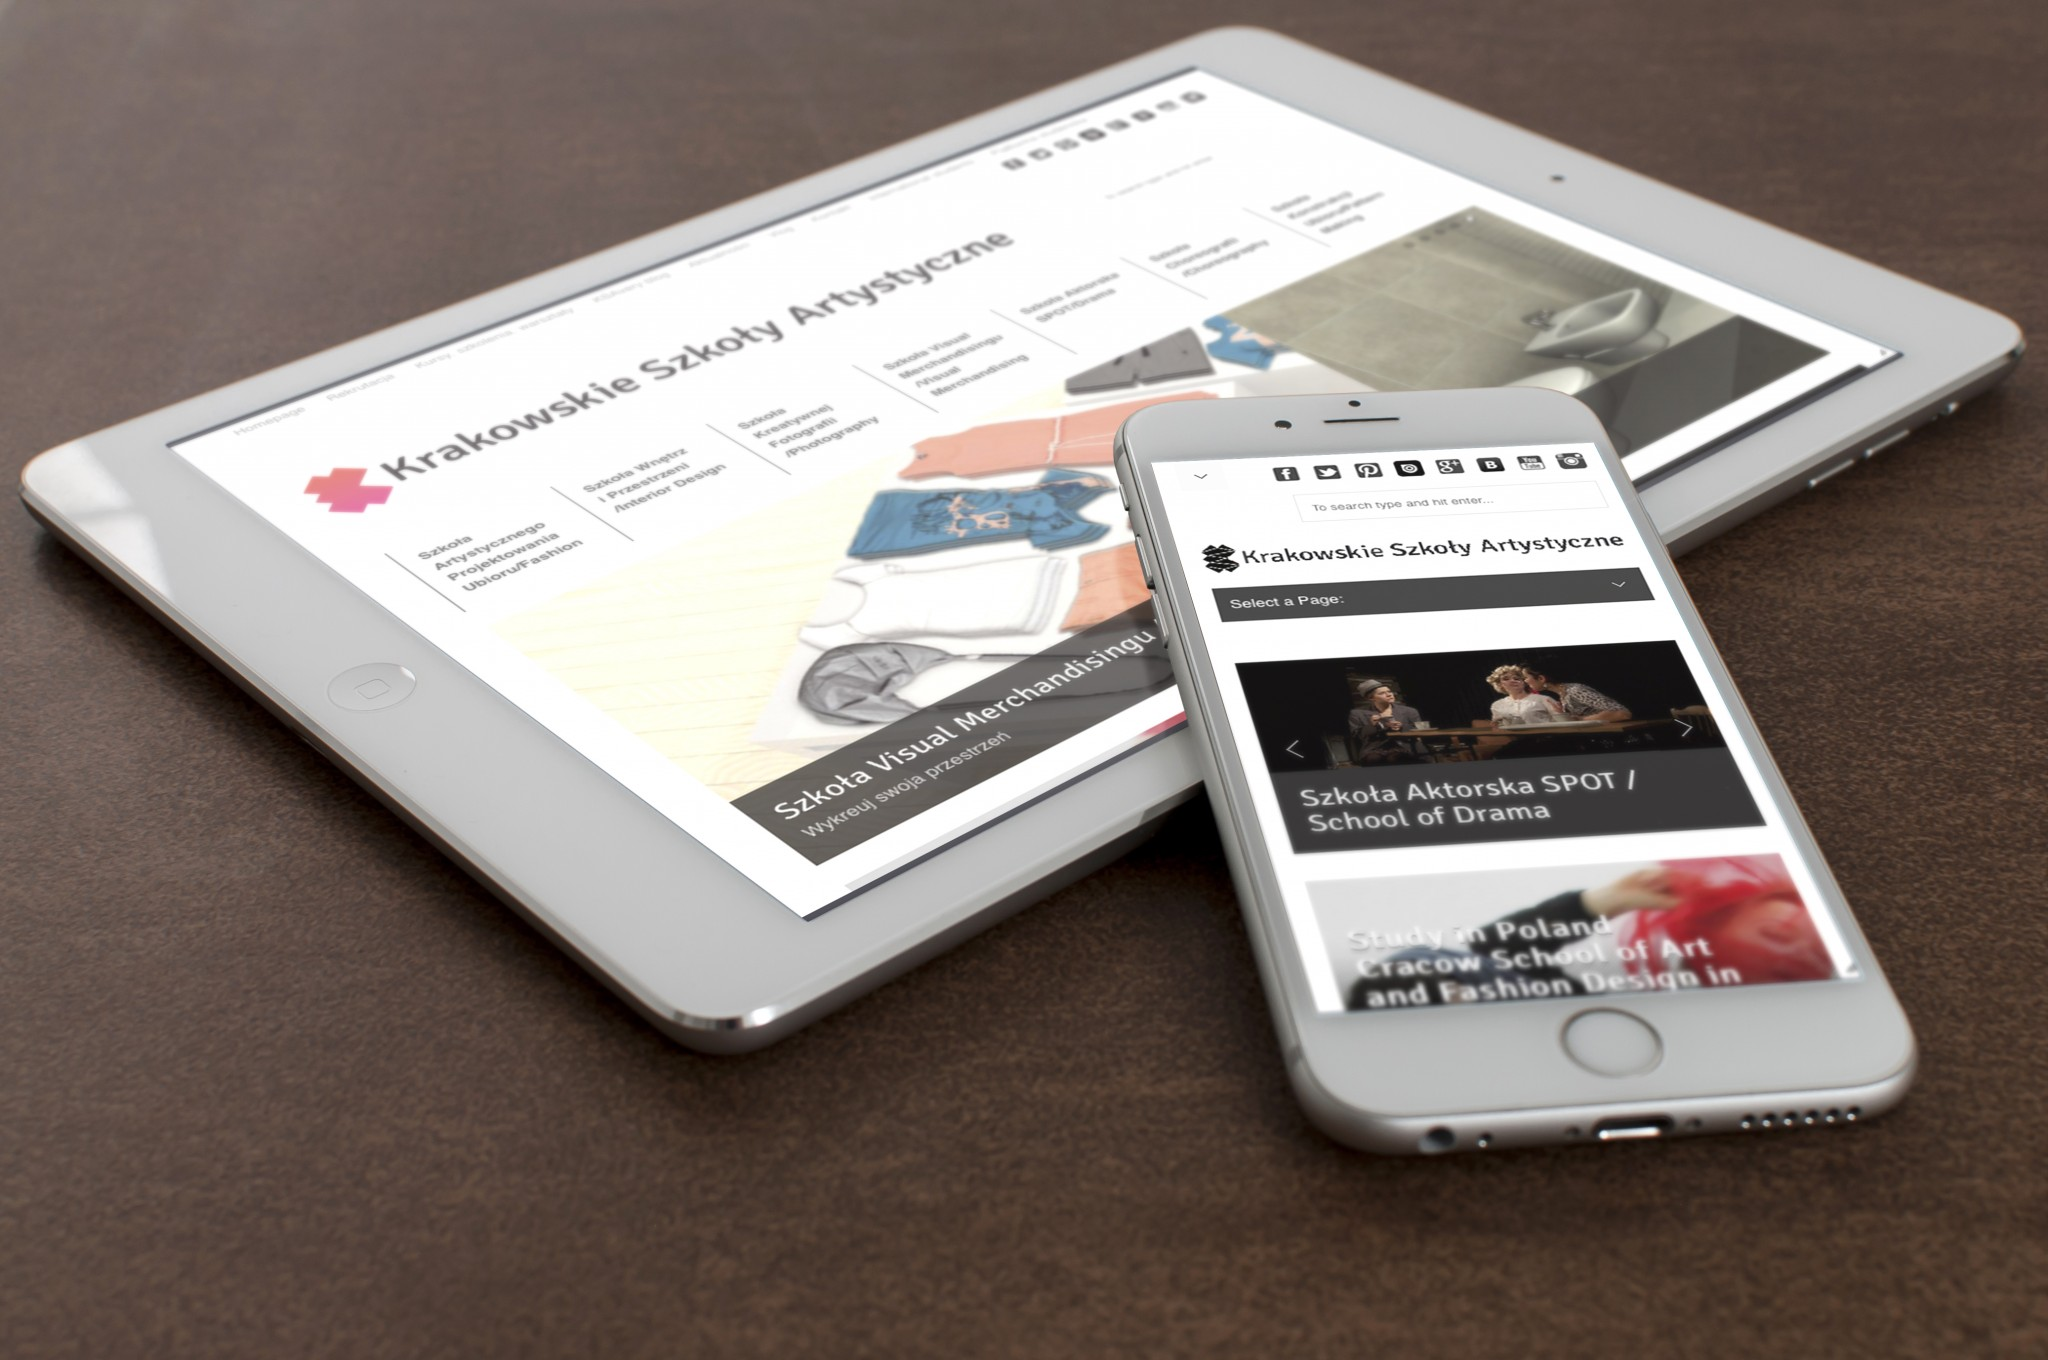 Cracow School of Art and Fashion Design website 1